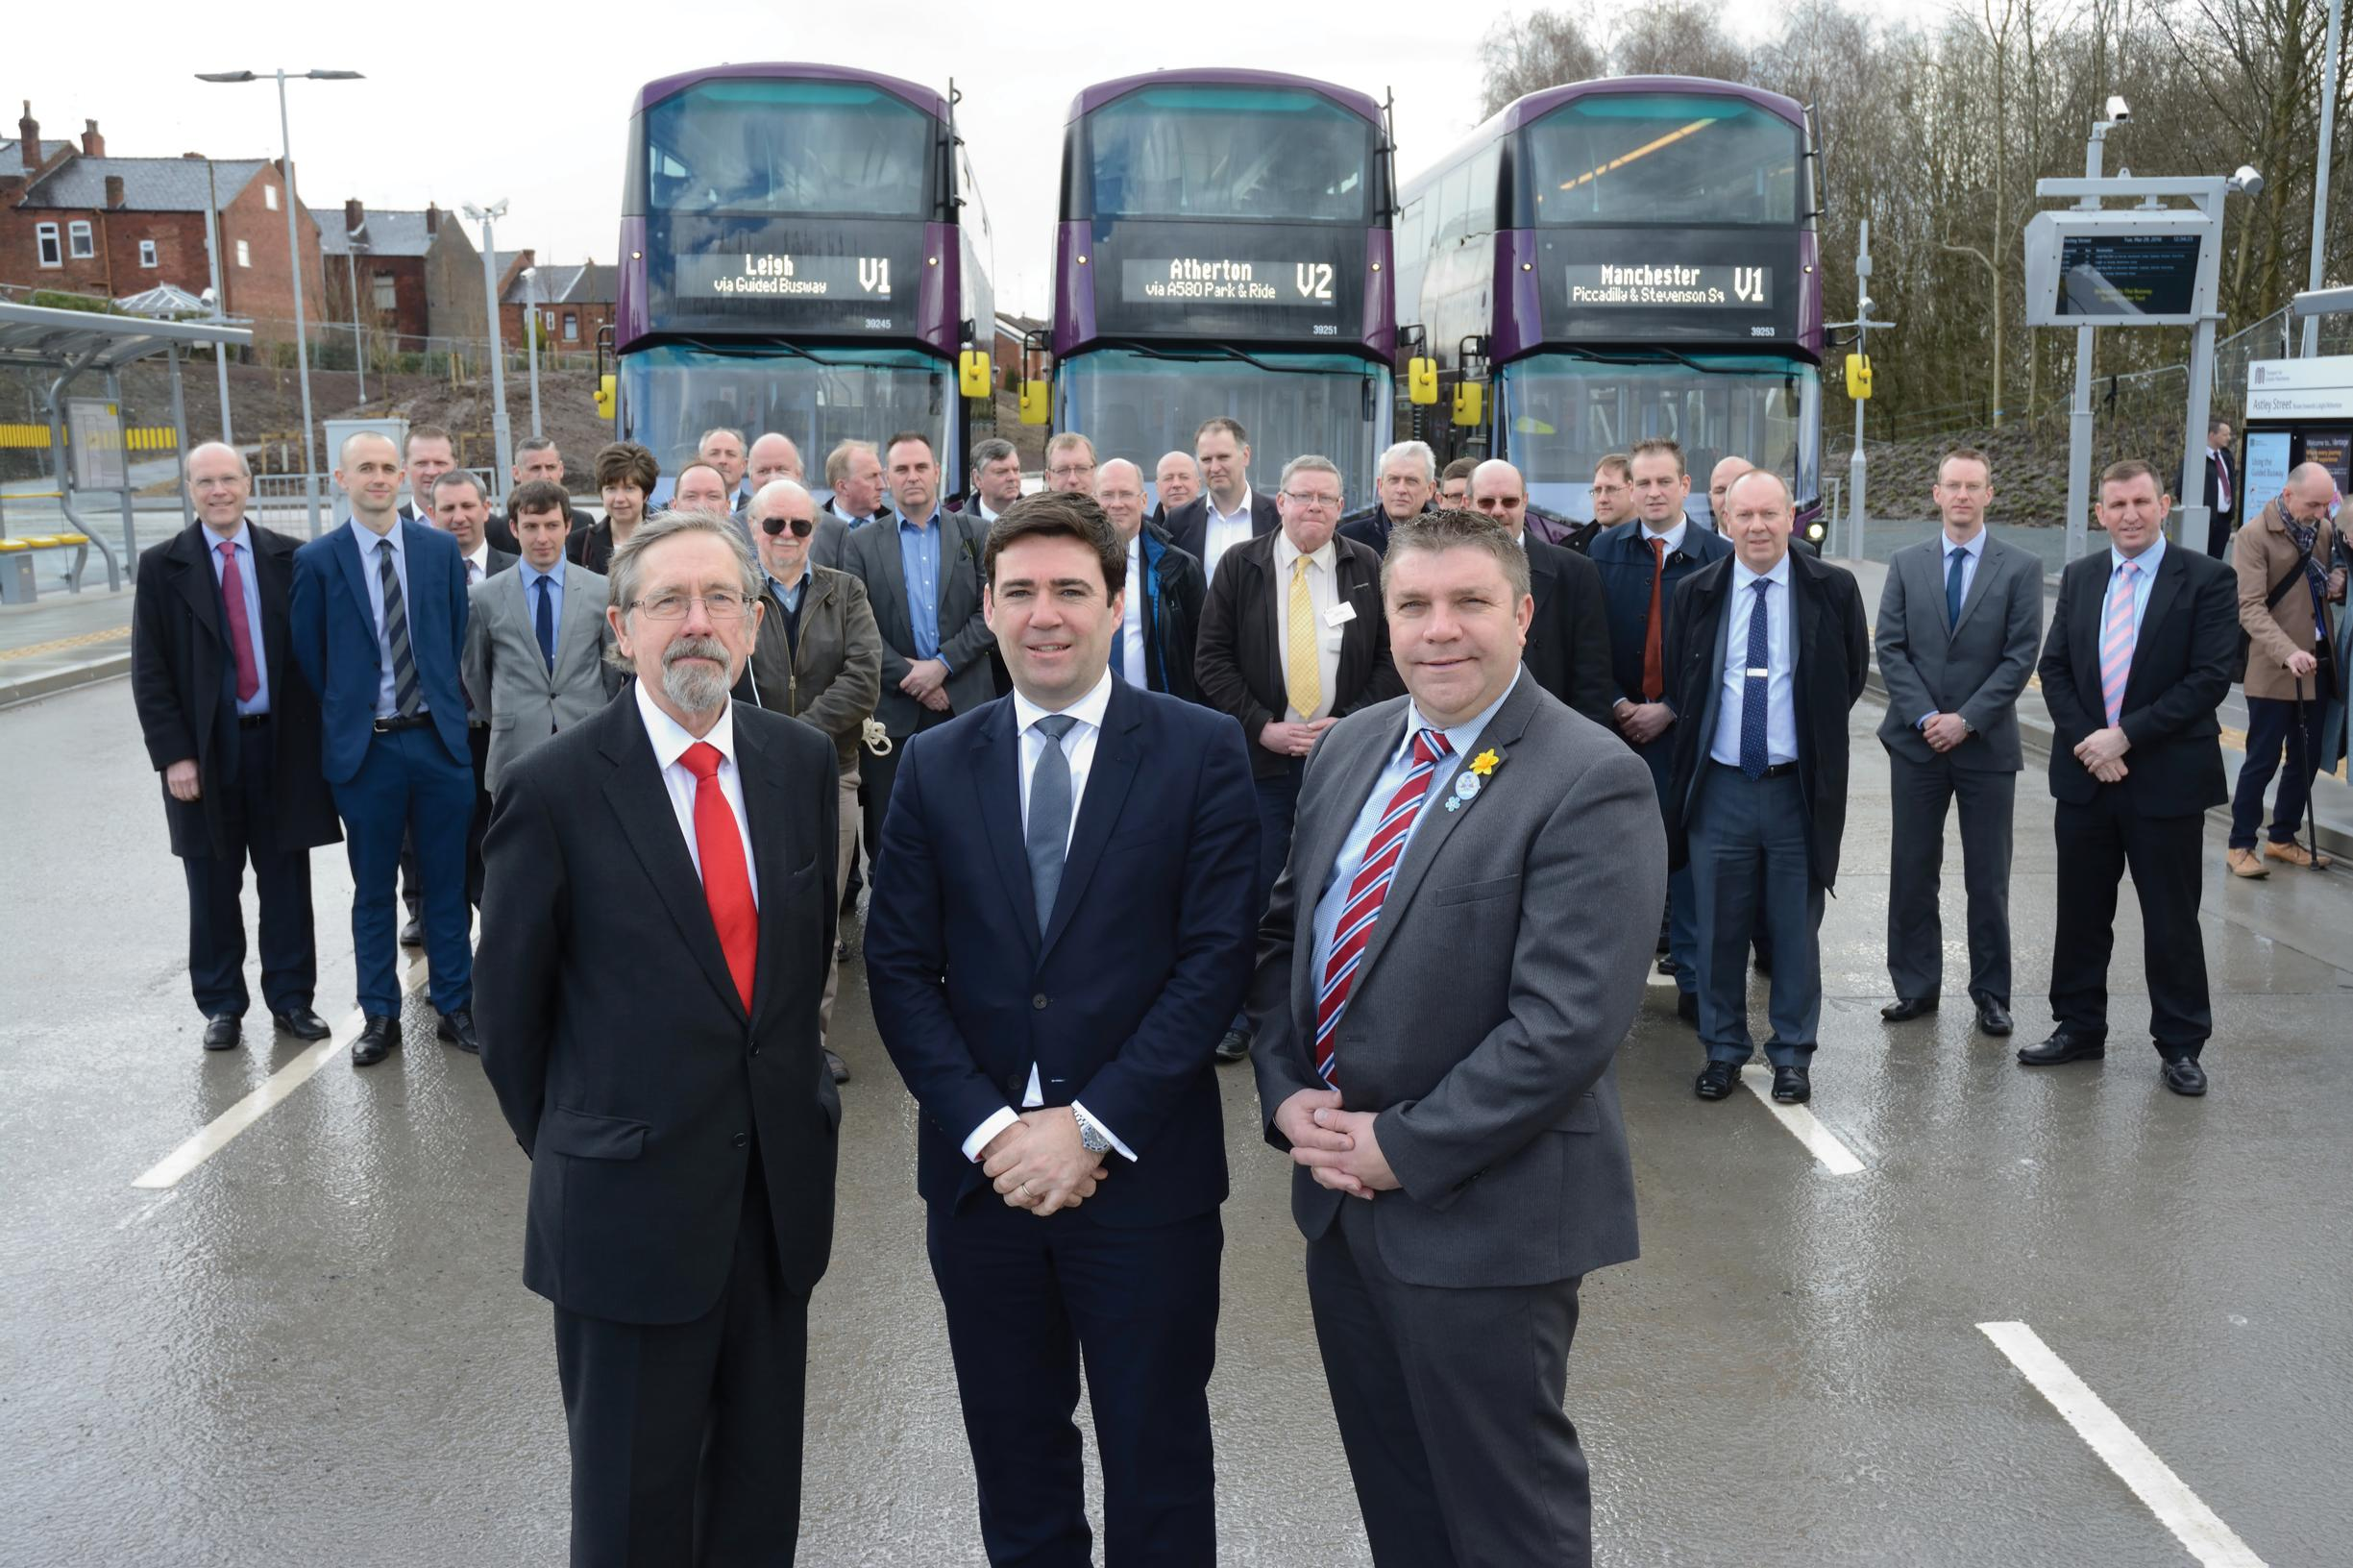 The grand opening: TfGMC's Cllr Andrew Fender with Andy Burnham MP and Cllr Mark Aldred